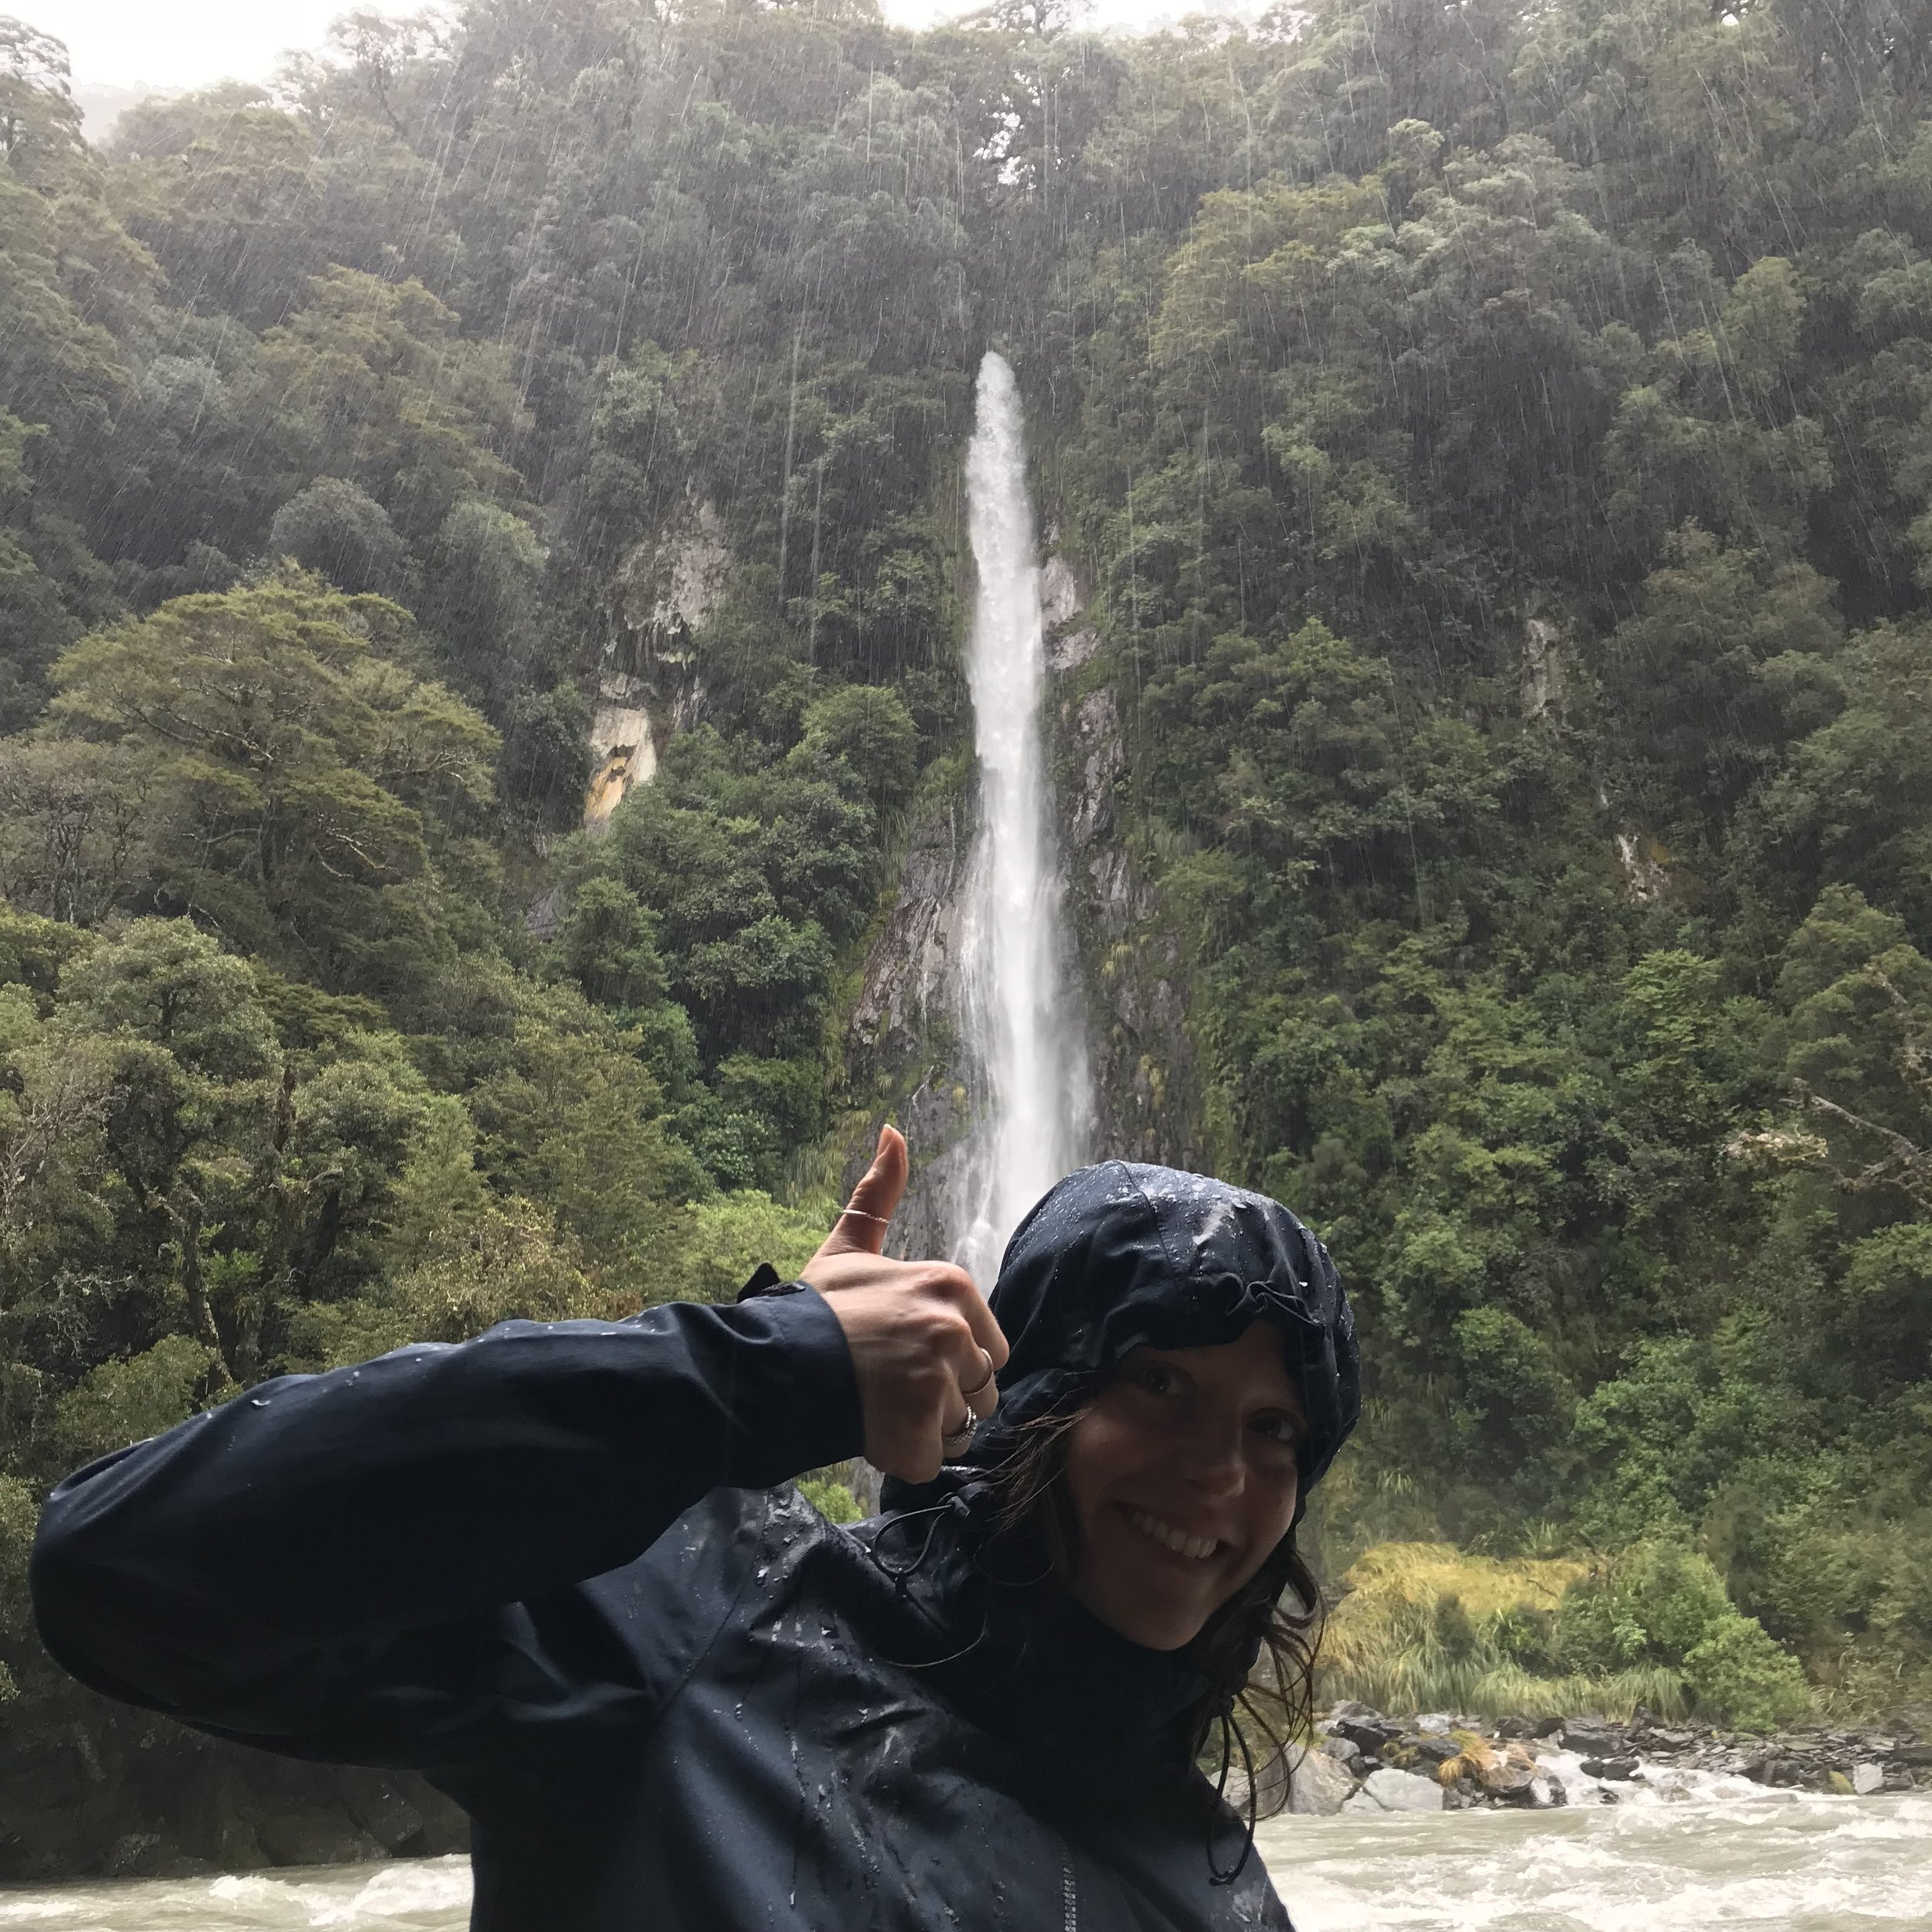 Epic rainfall means epic waterfalls. Here's one during a rain storm along Haast Pass.